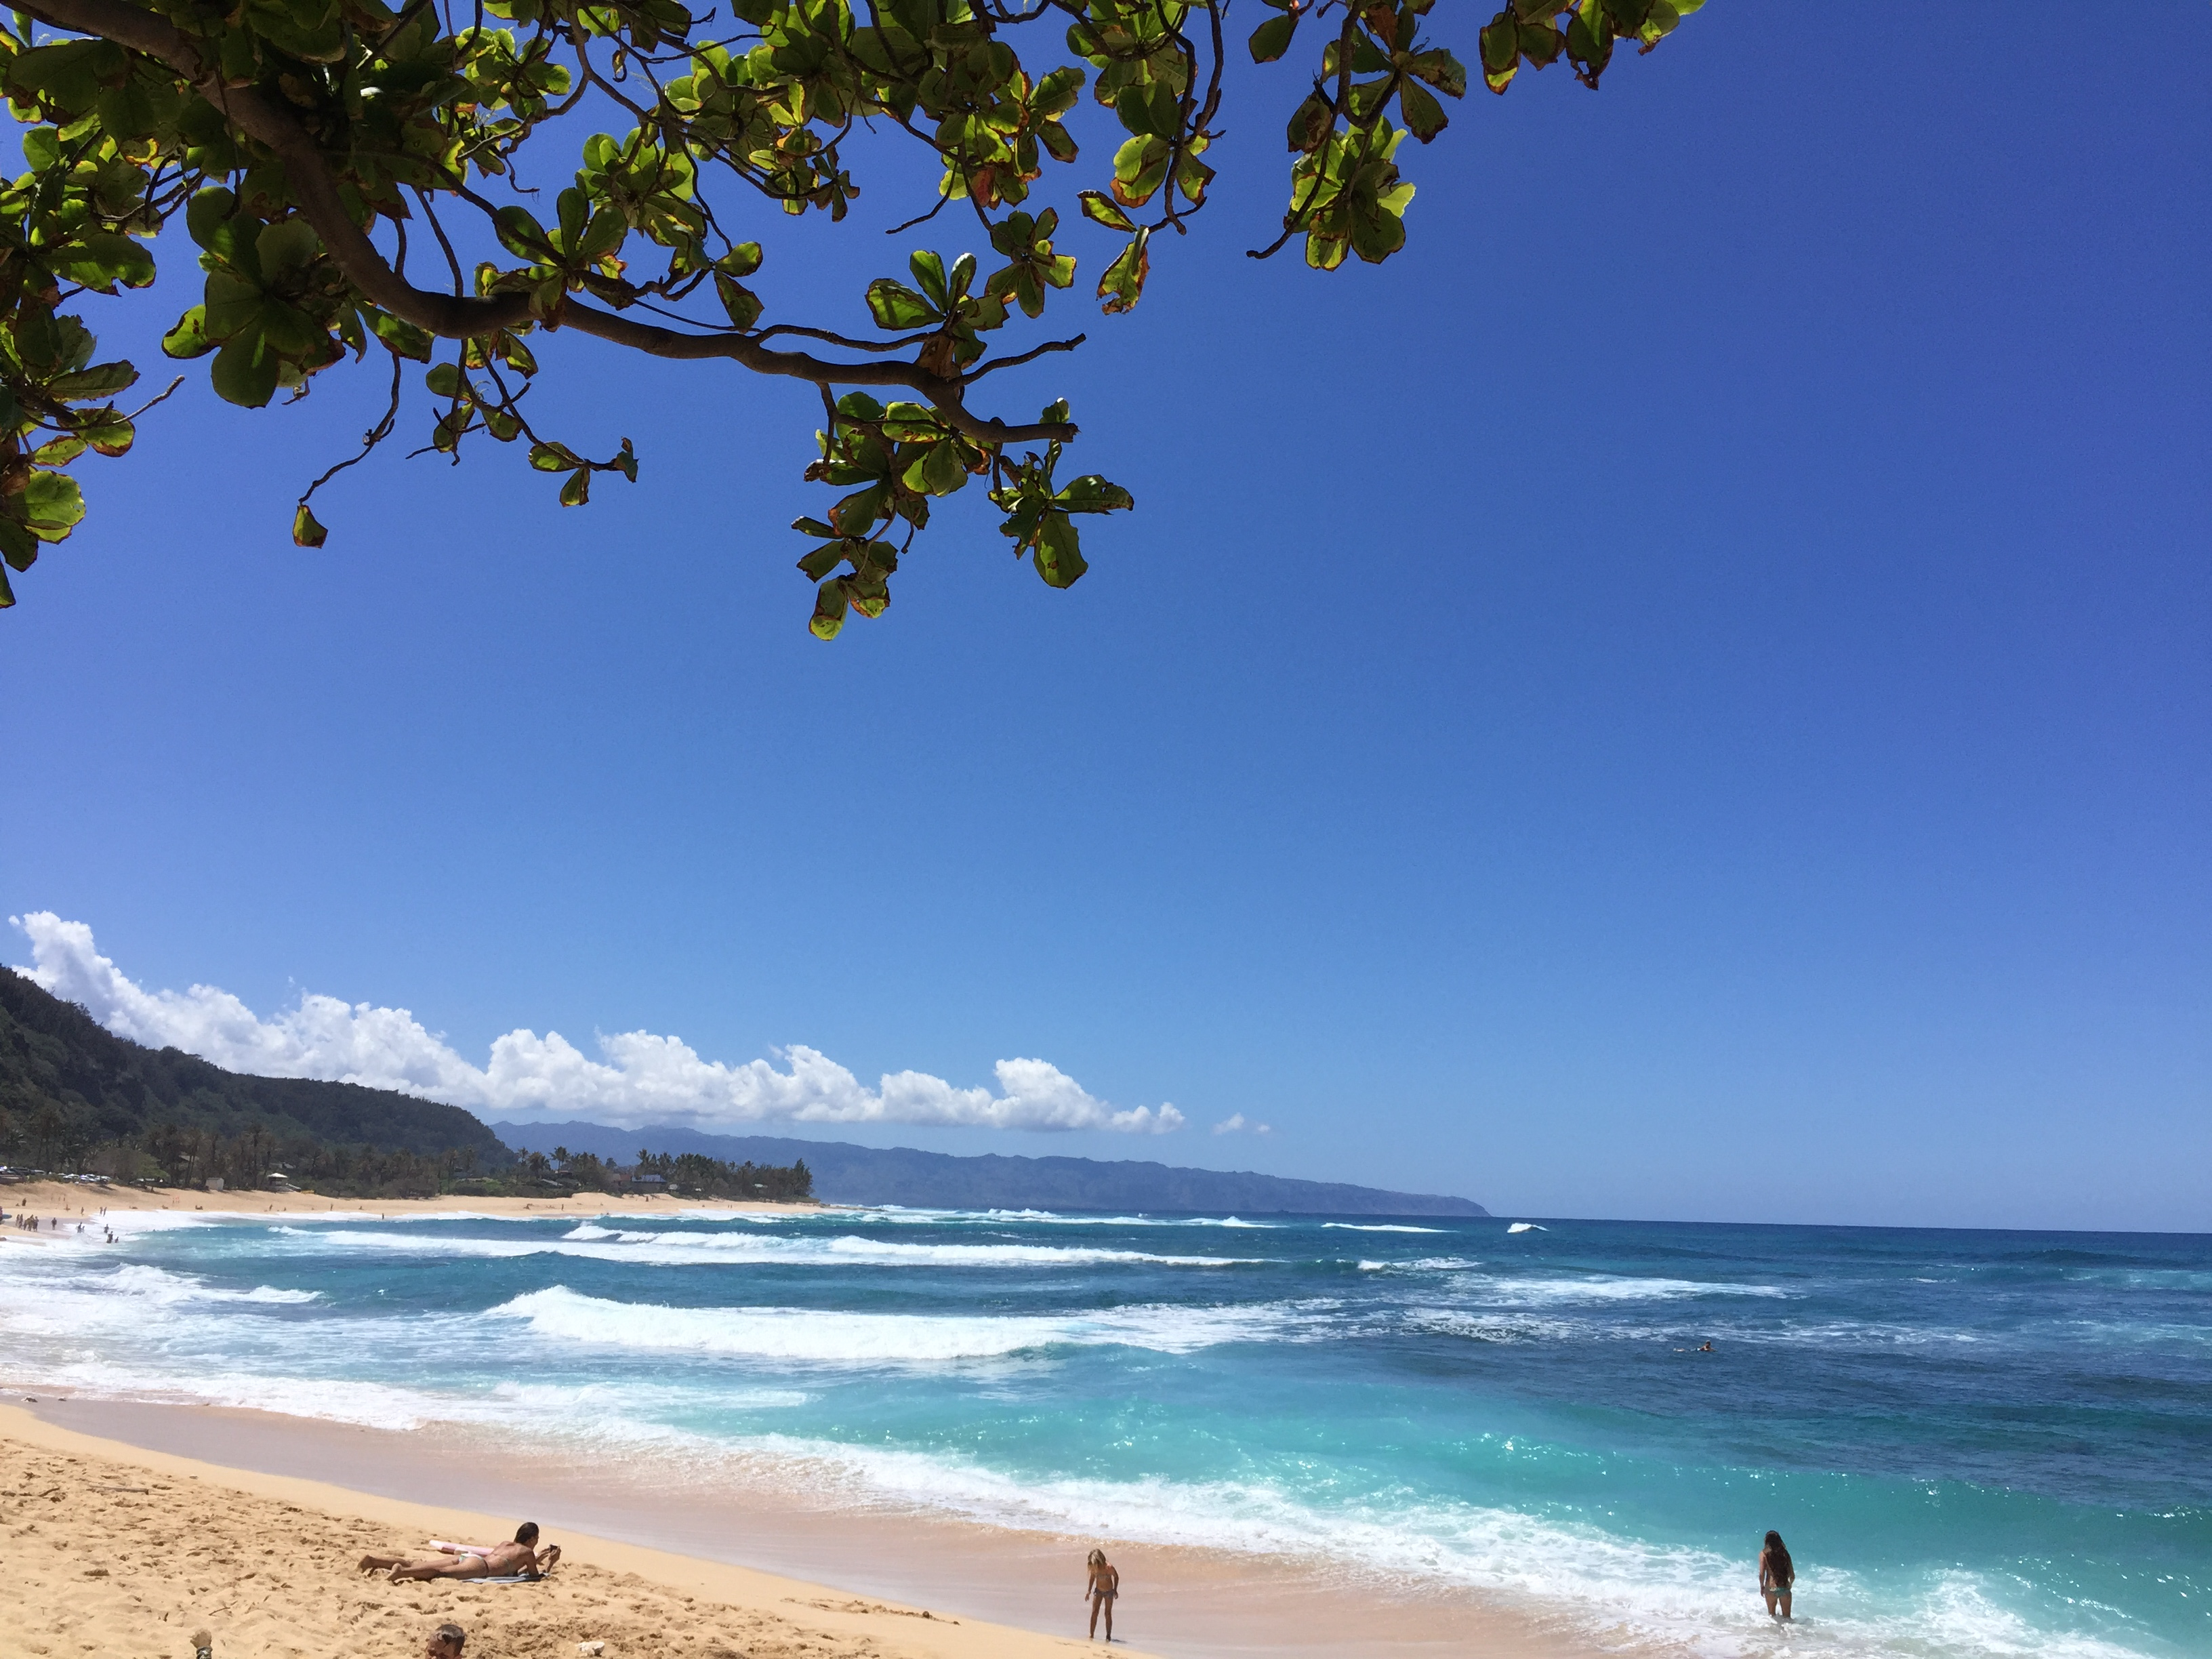 New Foodie Finds on the North Shore of Oahu